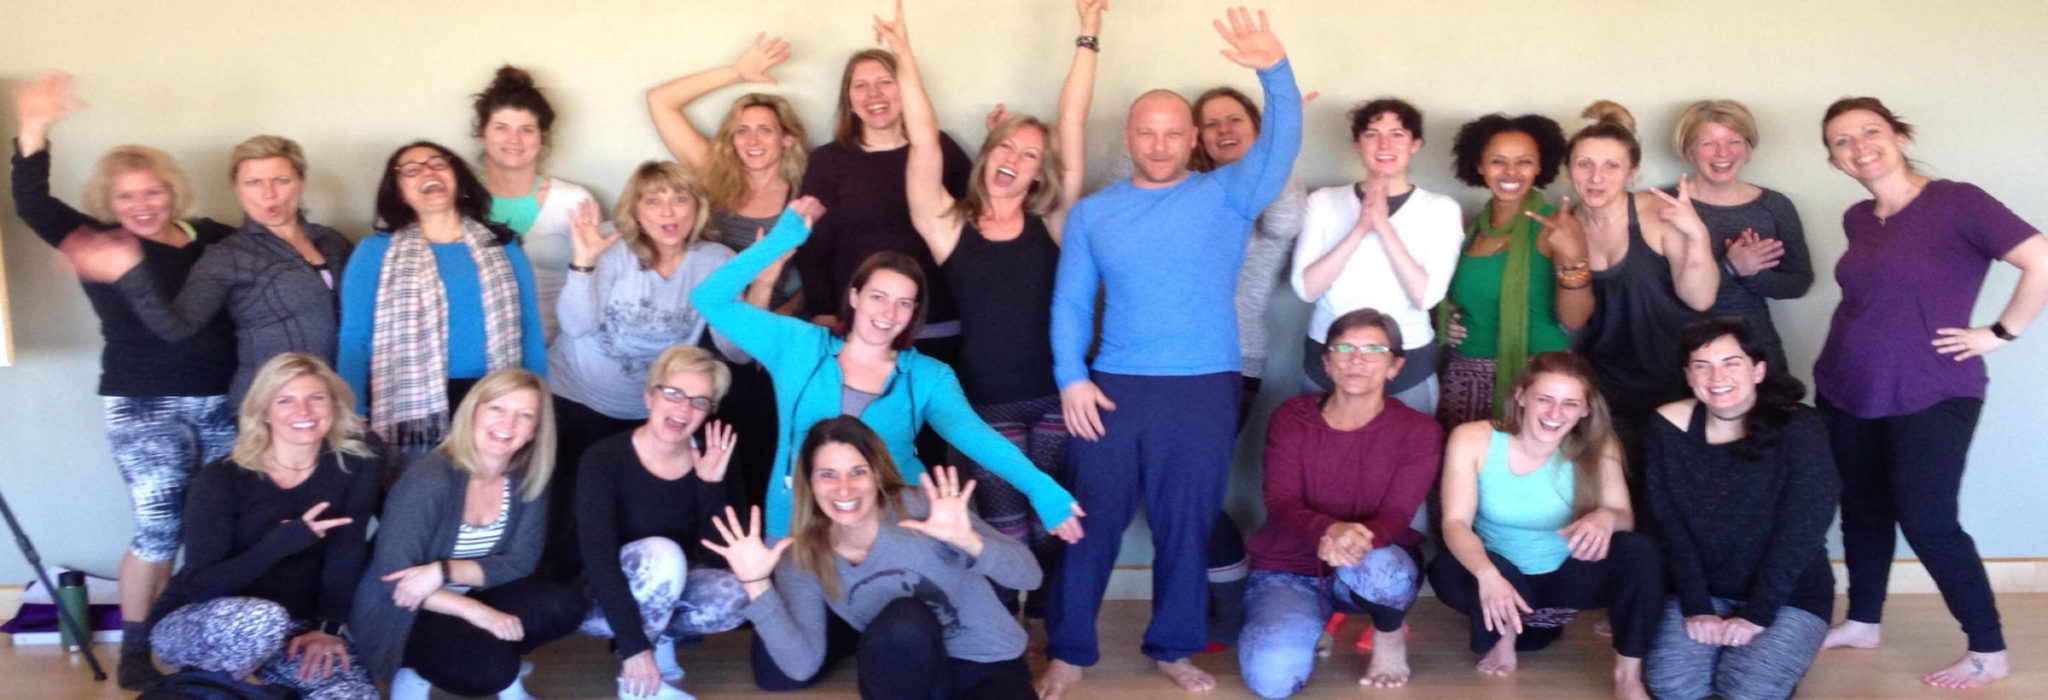 Pranalife Yoga Teacher Training with Asia Nelson yoga Waterloo Kitchener Guelph Cambridge Toronto